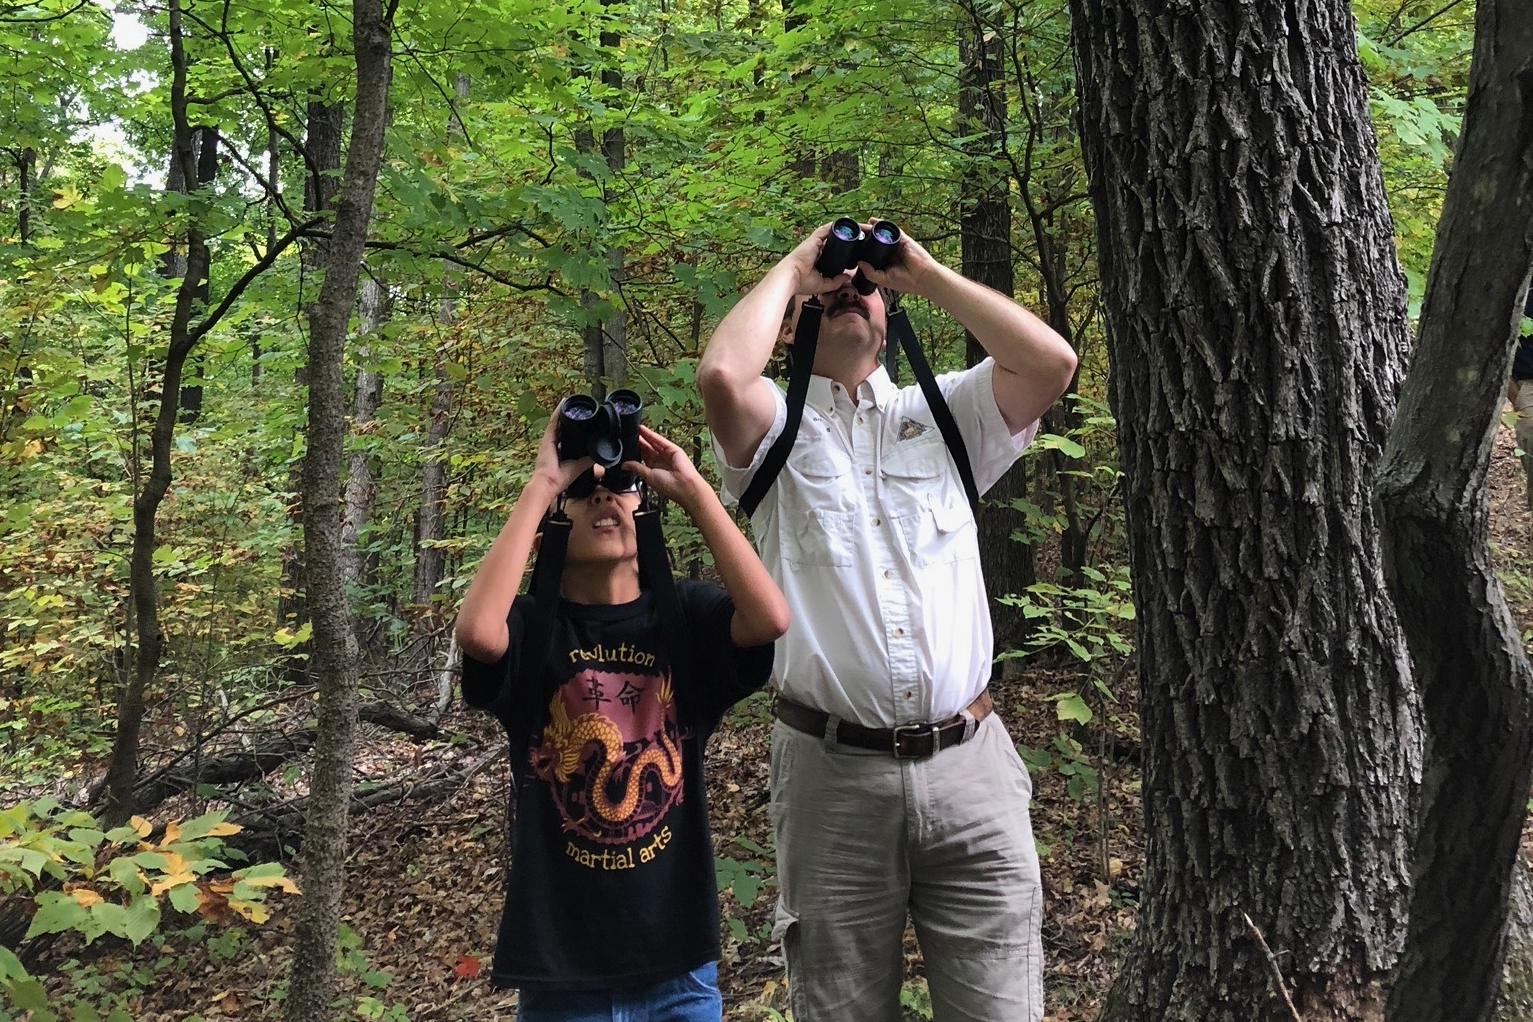 2017 Conference - Forestkeepers spent the day hiking through Engelmann Woods Conservation area to learn about Forest Management and its effect on birds. They were joined by three members of the Audubon Society who helped find and identify birds during the hike.